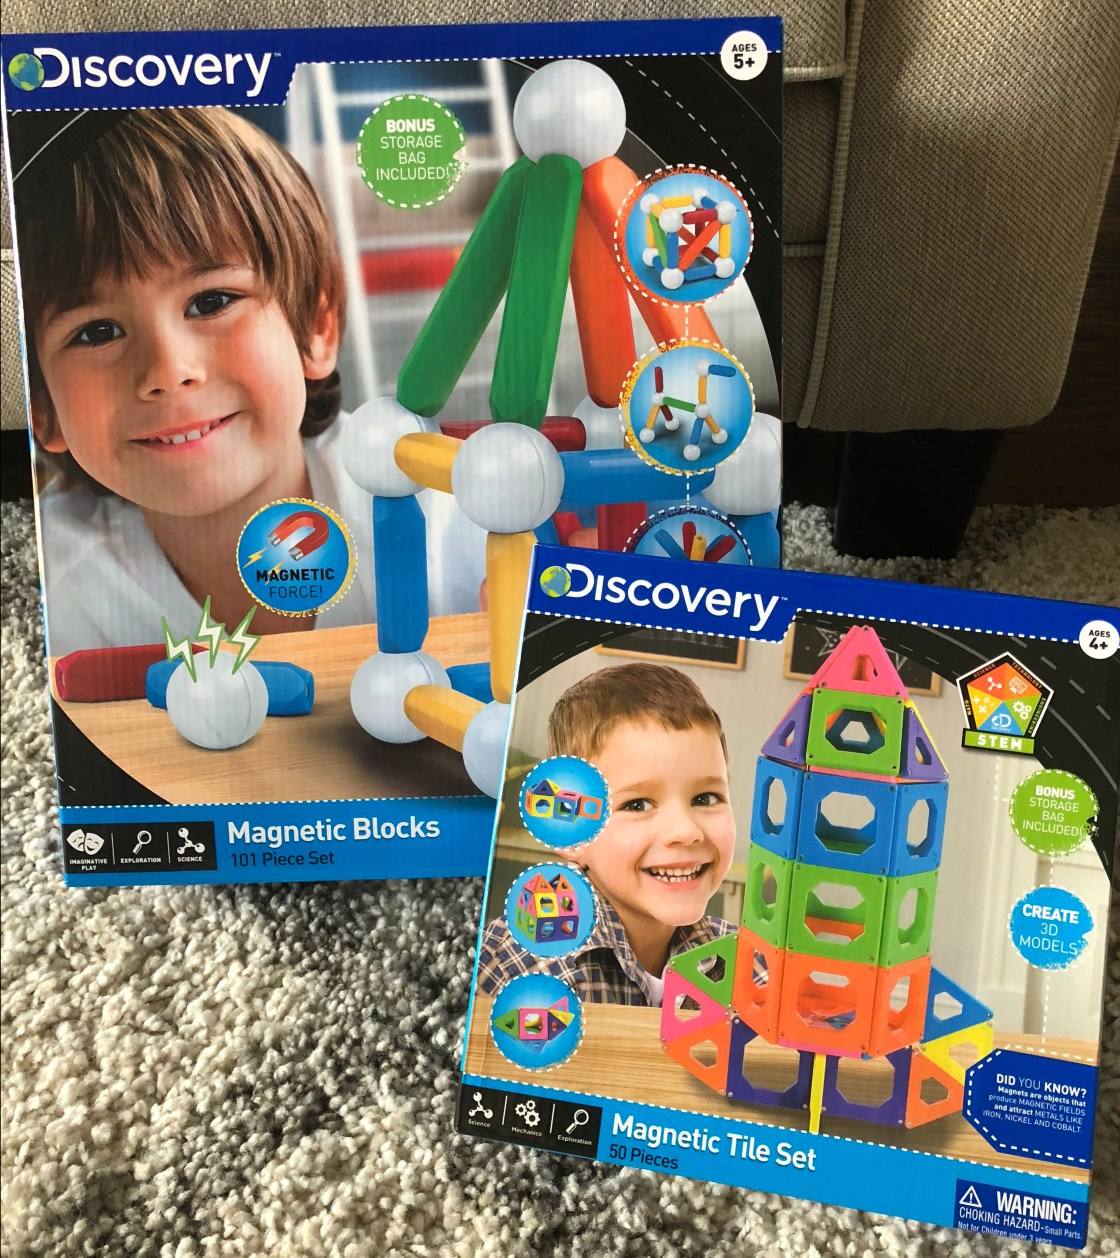 Discovery Magnetic Blocks and Magnetic Tiles